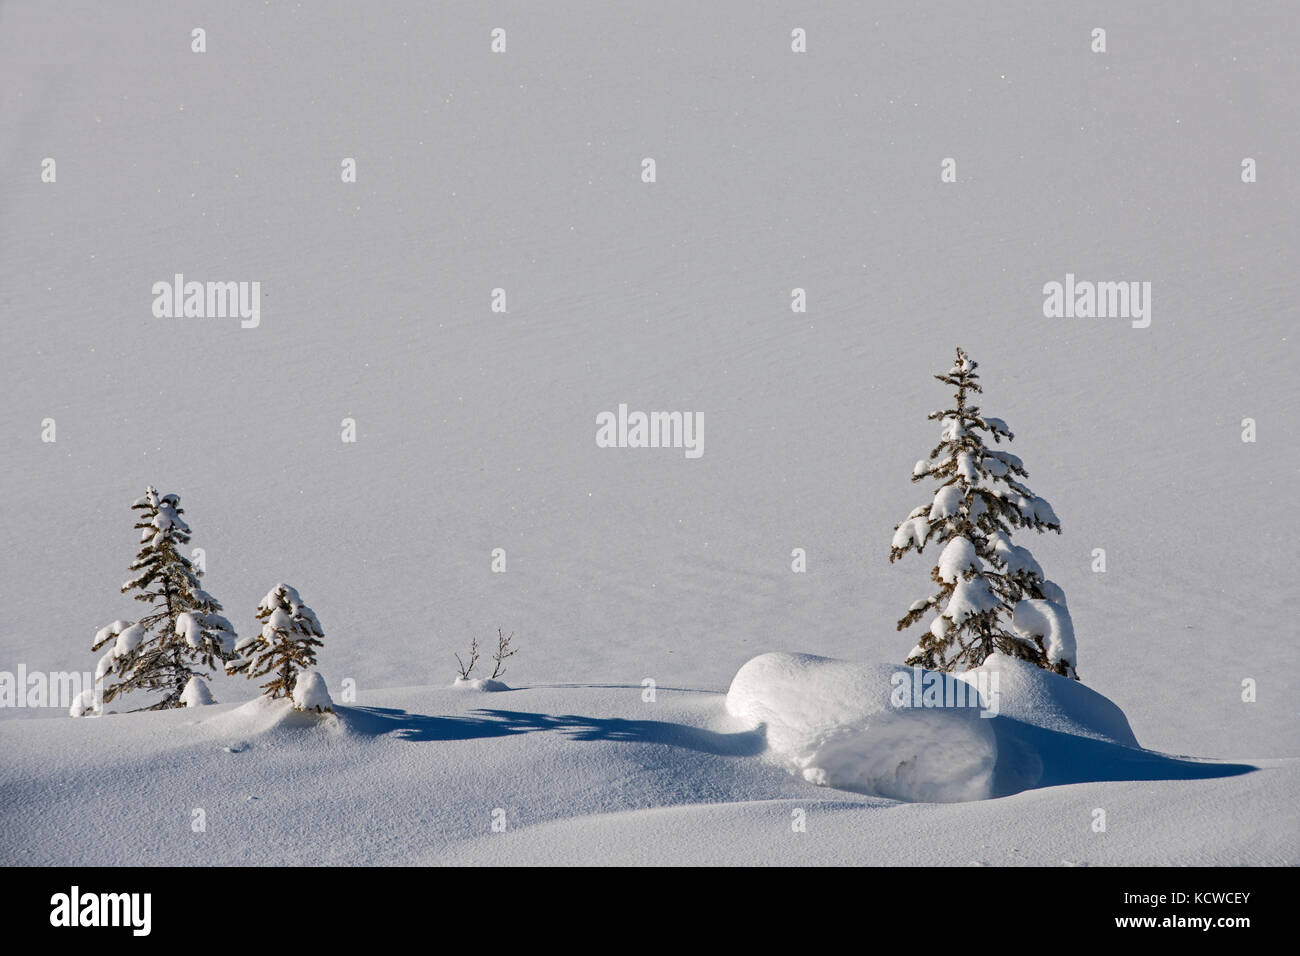 Coniferous tree saplings in snow, Kootenay National Park, British Columbia, Canada - Stock Image